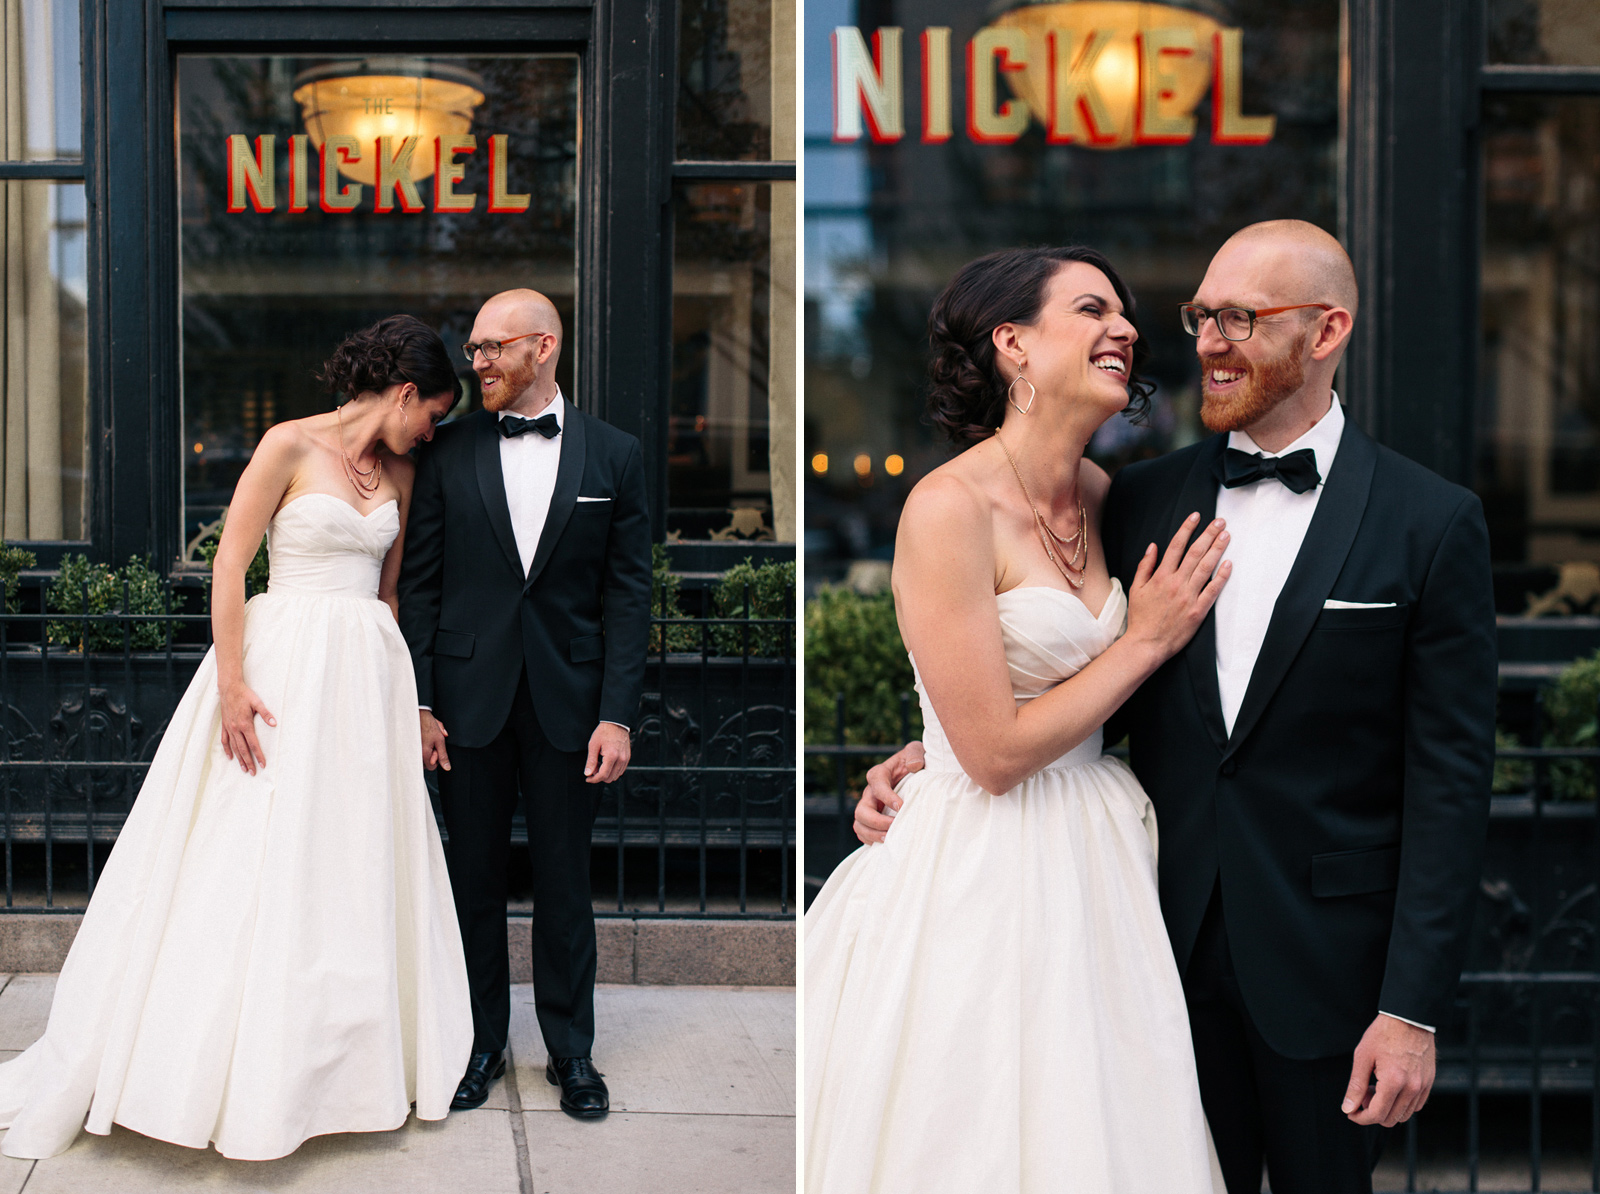 Coo-Hills-Wedding-Photographer-Downtown-Denver-Rebecc-and-Aaron-10.jpg